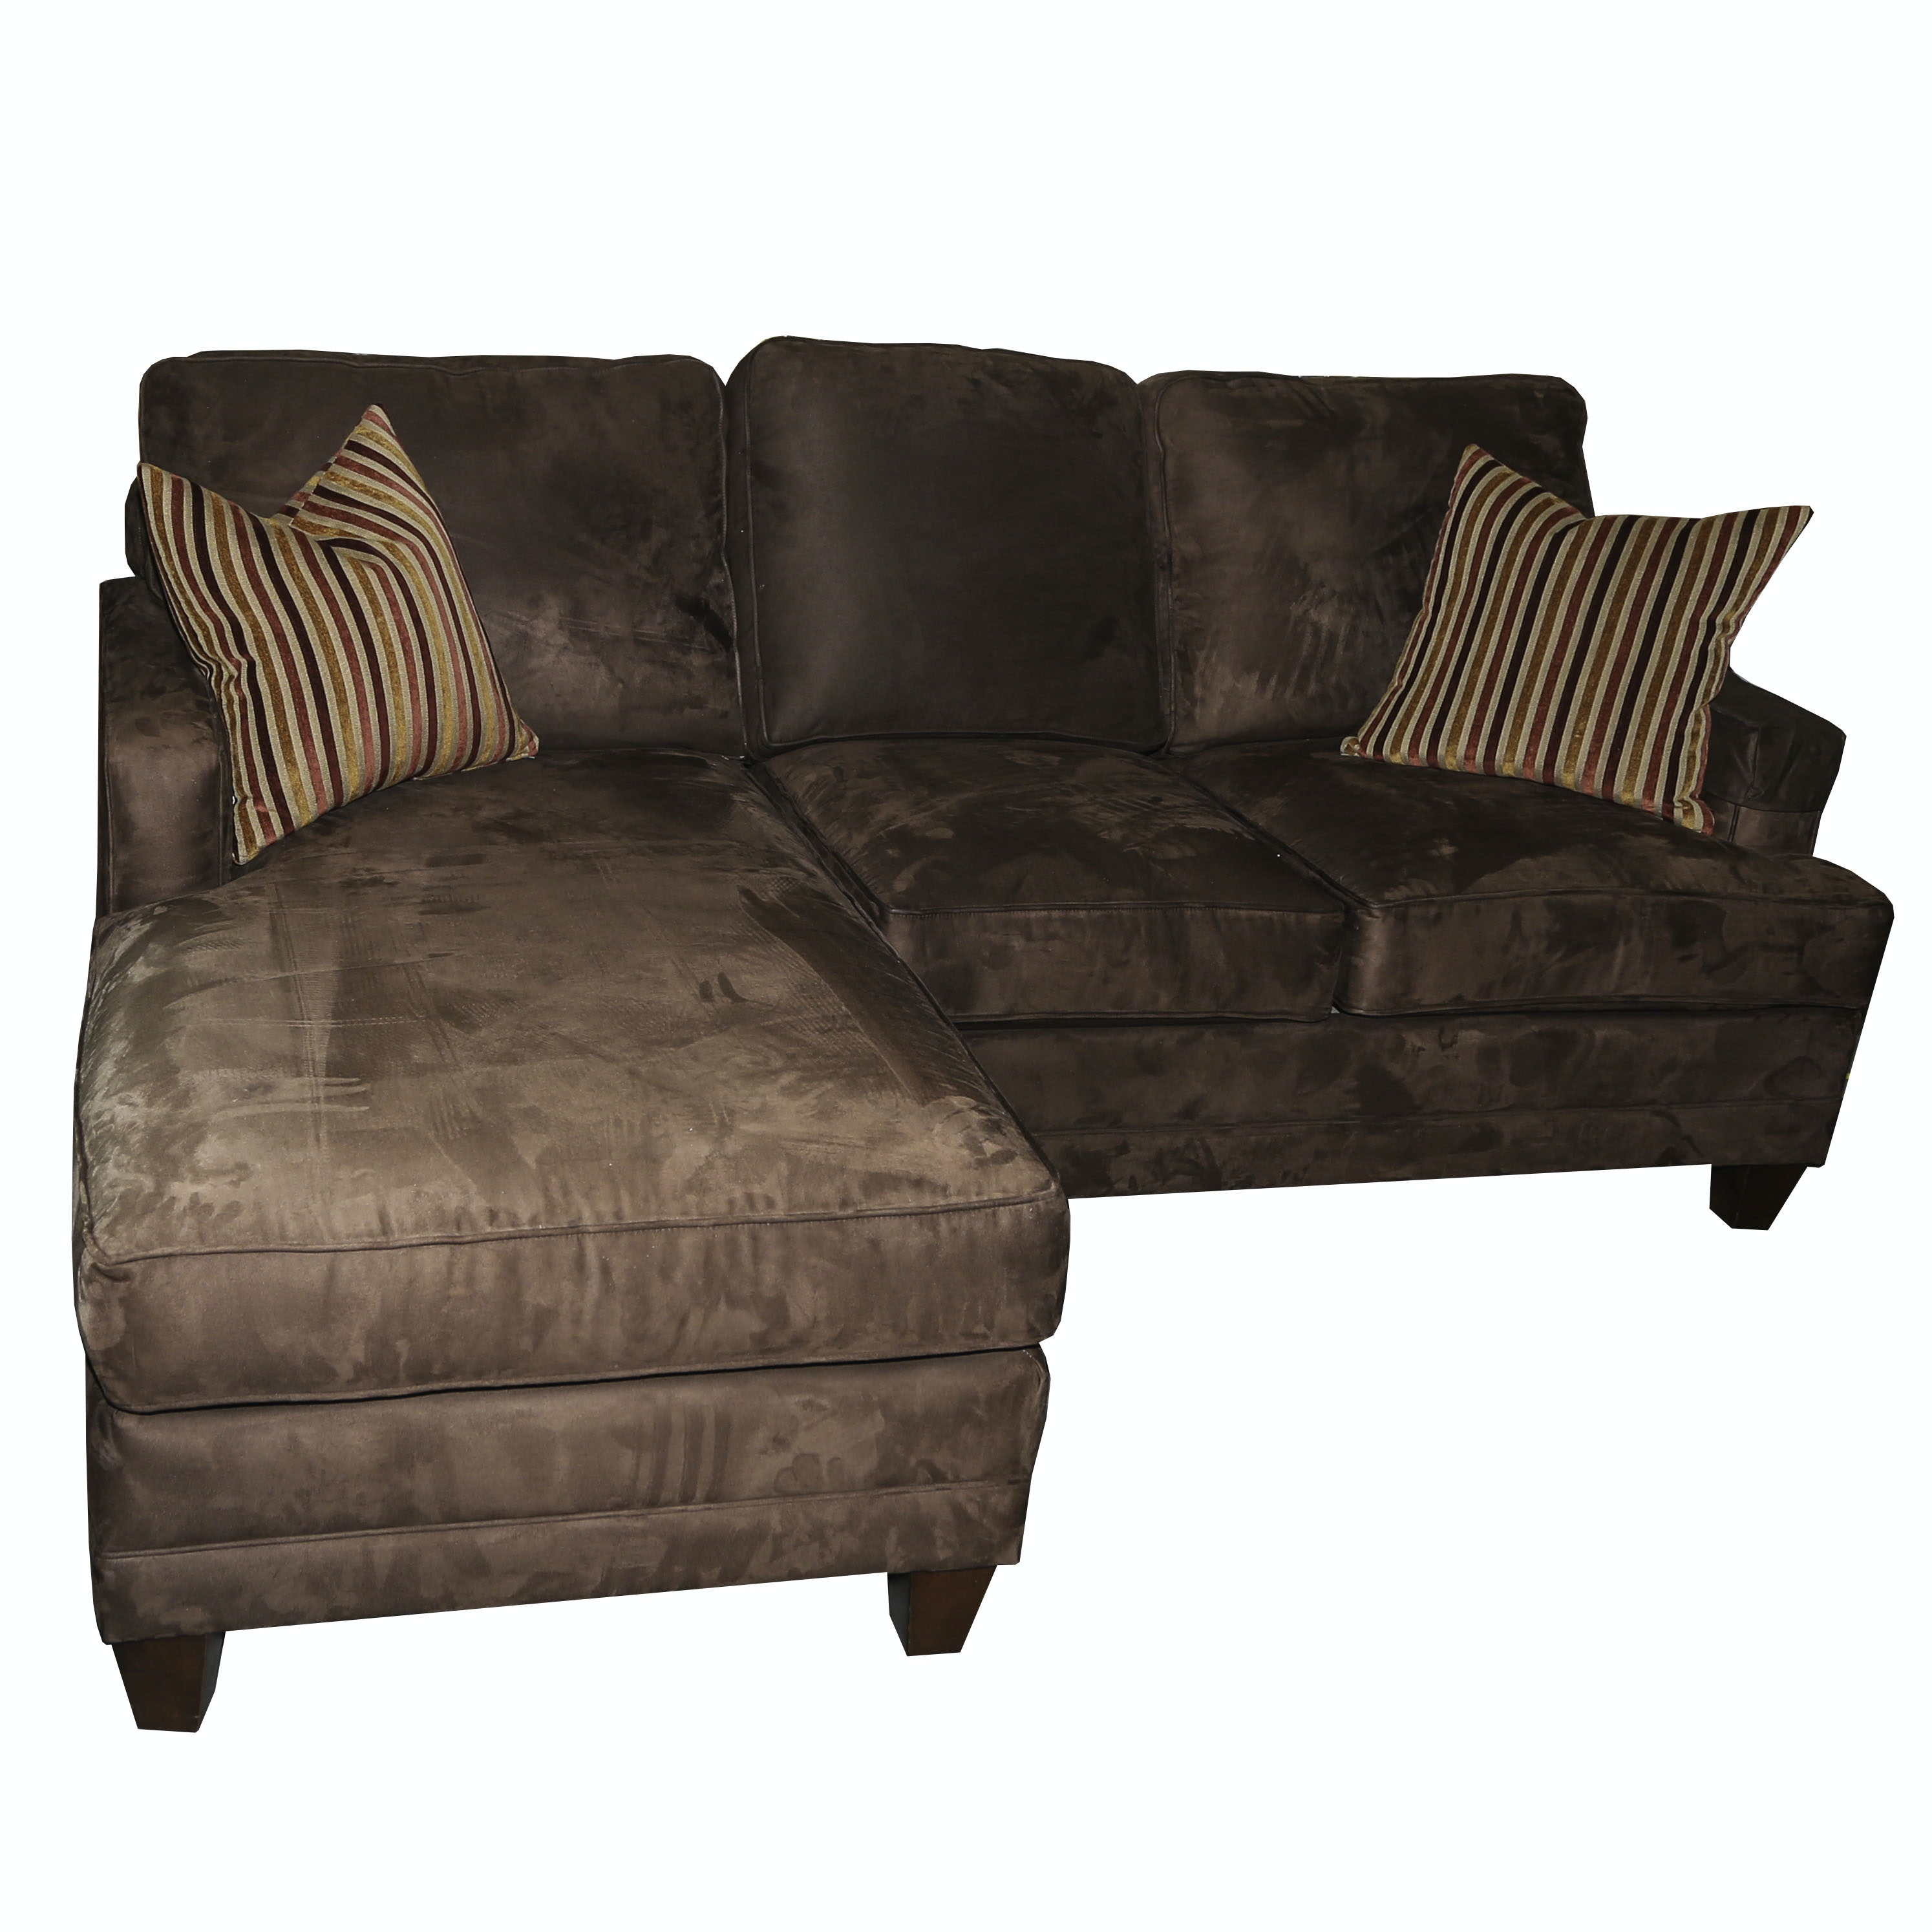 Contemporary Lounging Sofa By Bassett ...